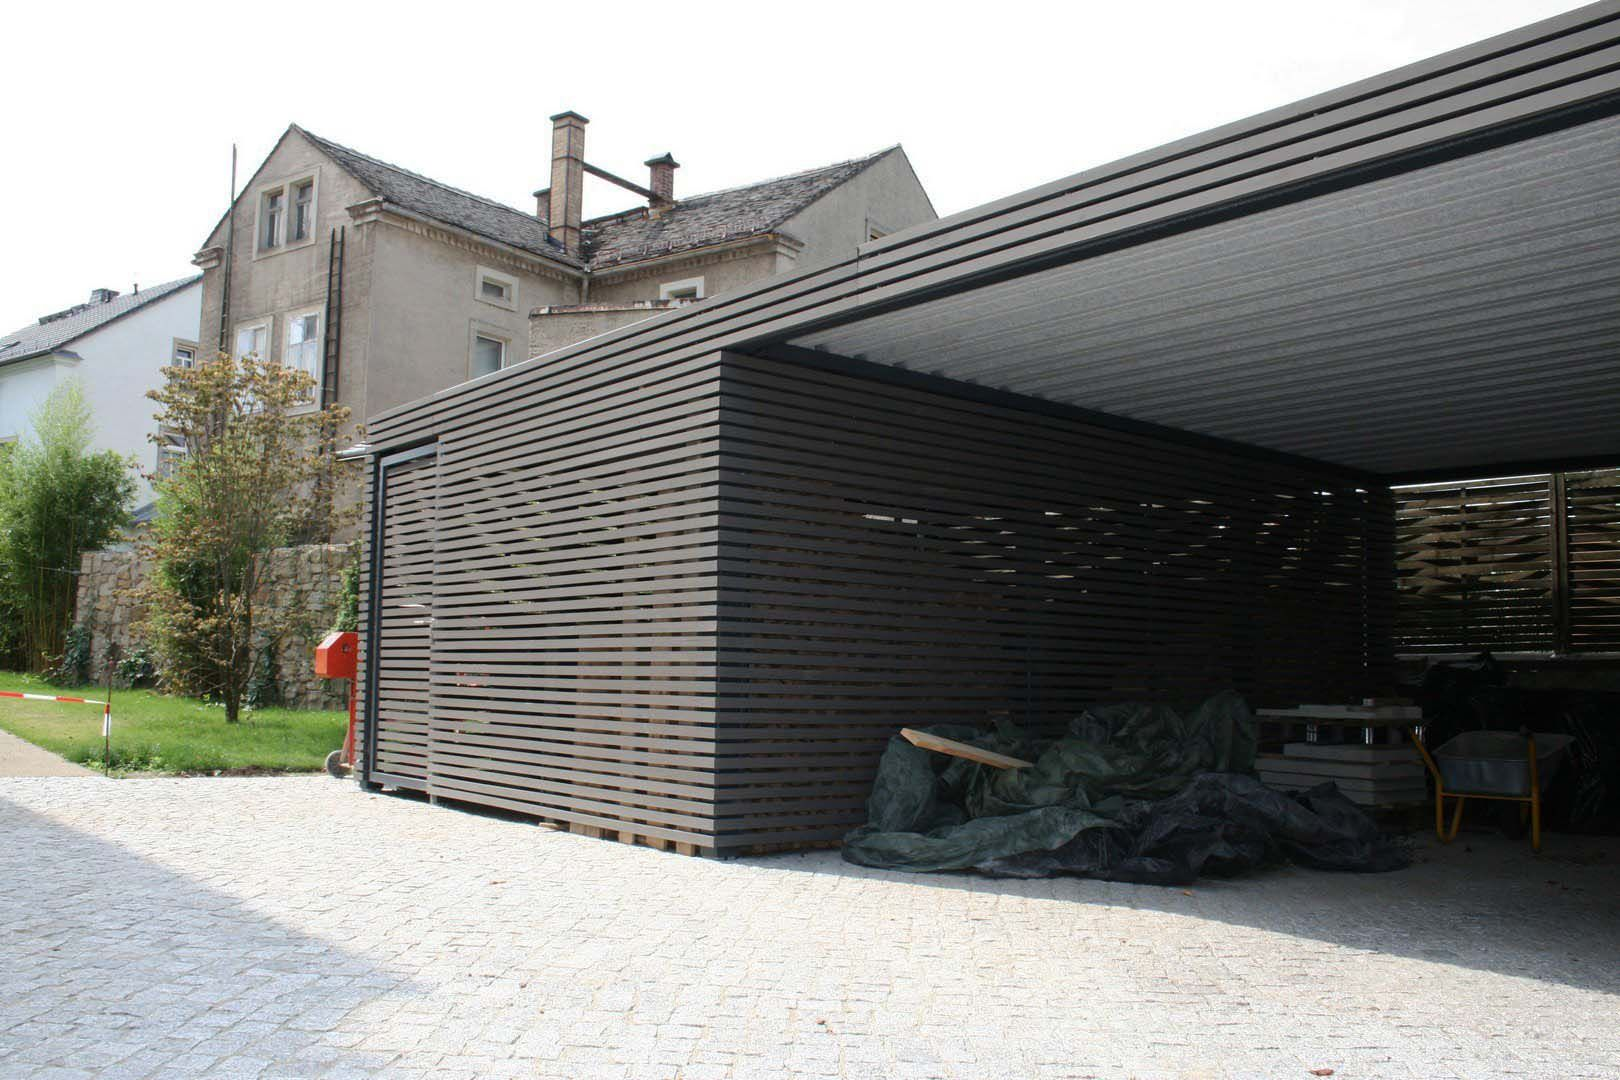 Design metall carport aus holz stahl individuell dortmund for Carport holz metall